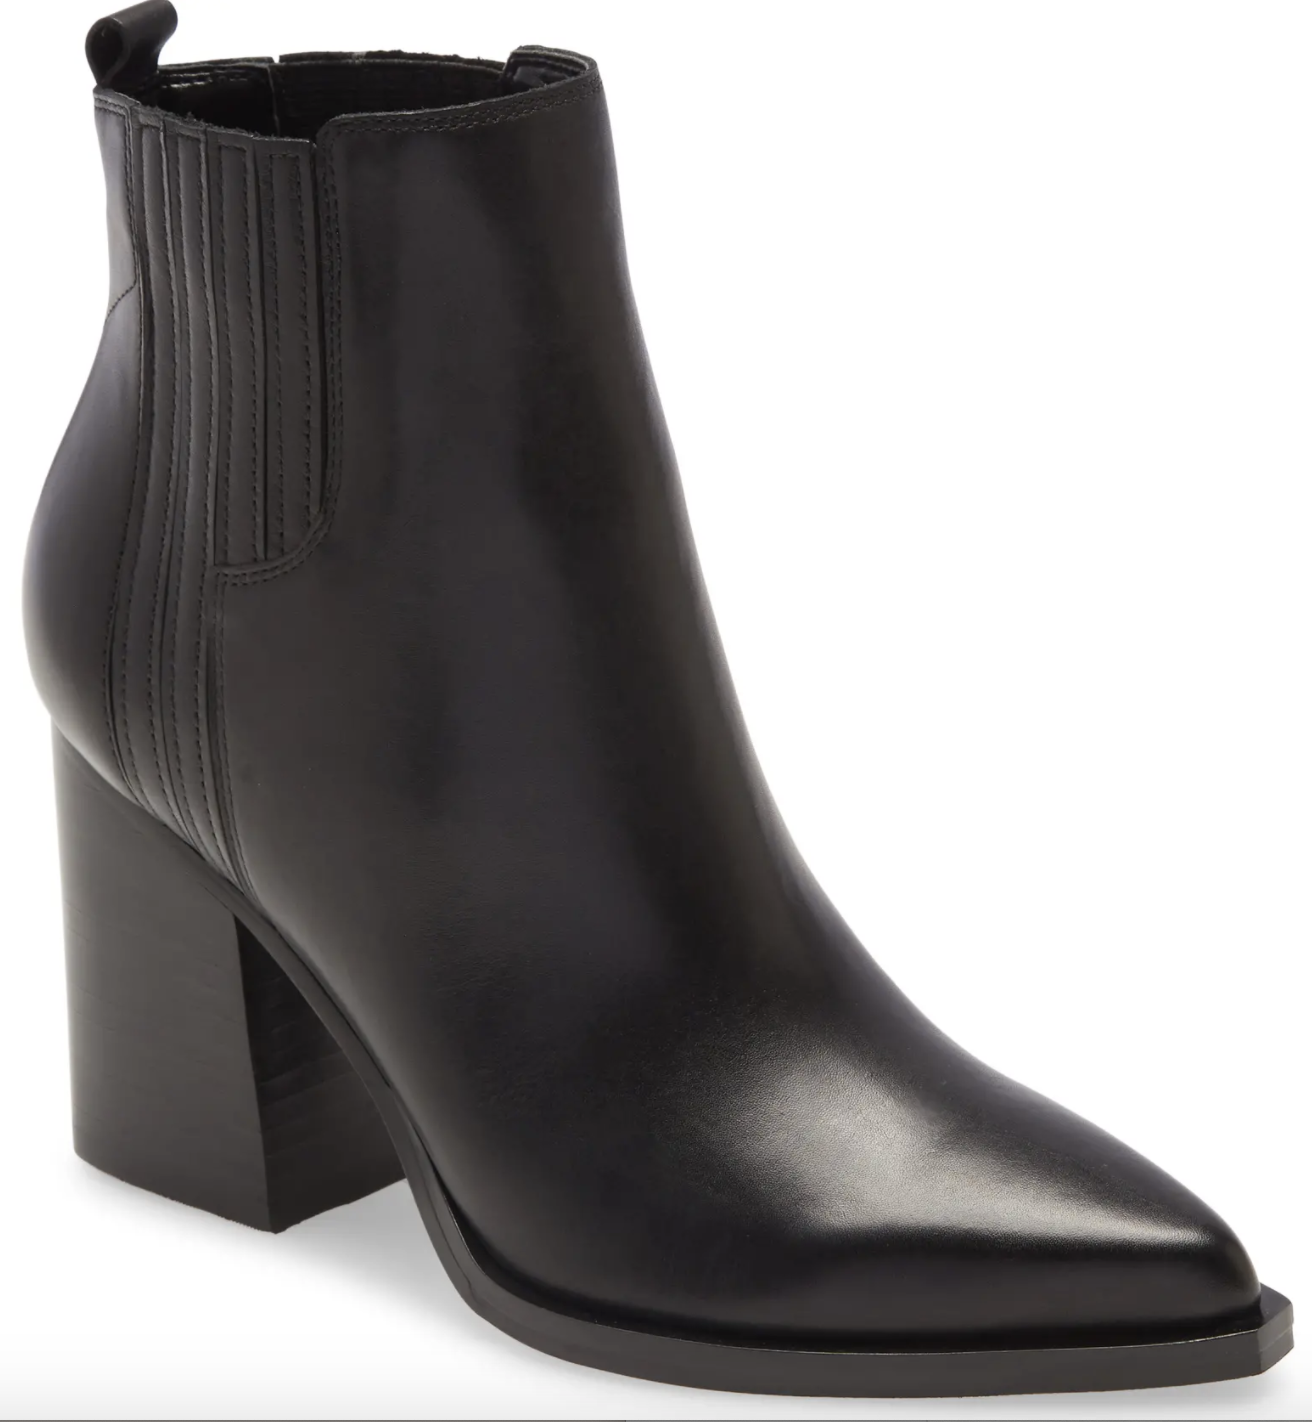 marc fisher pointed toe balck bootie